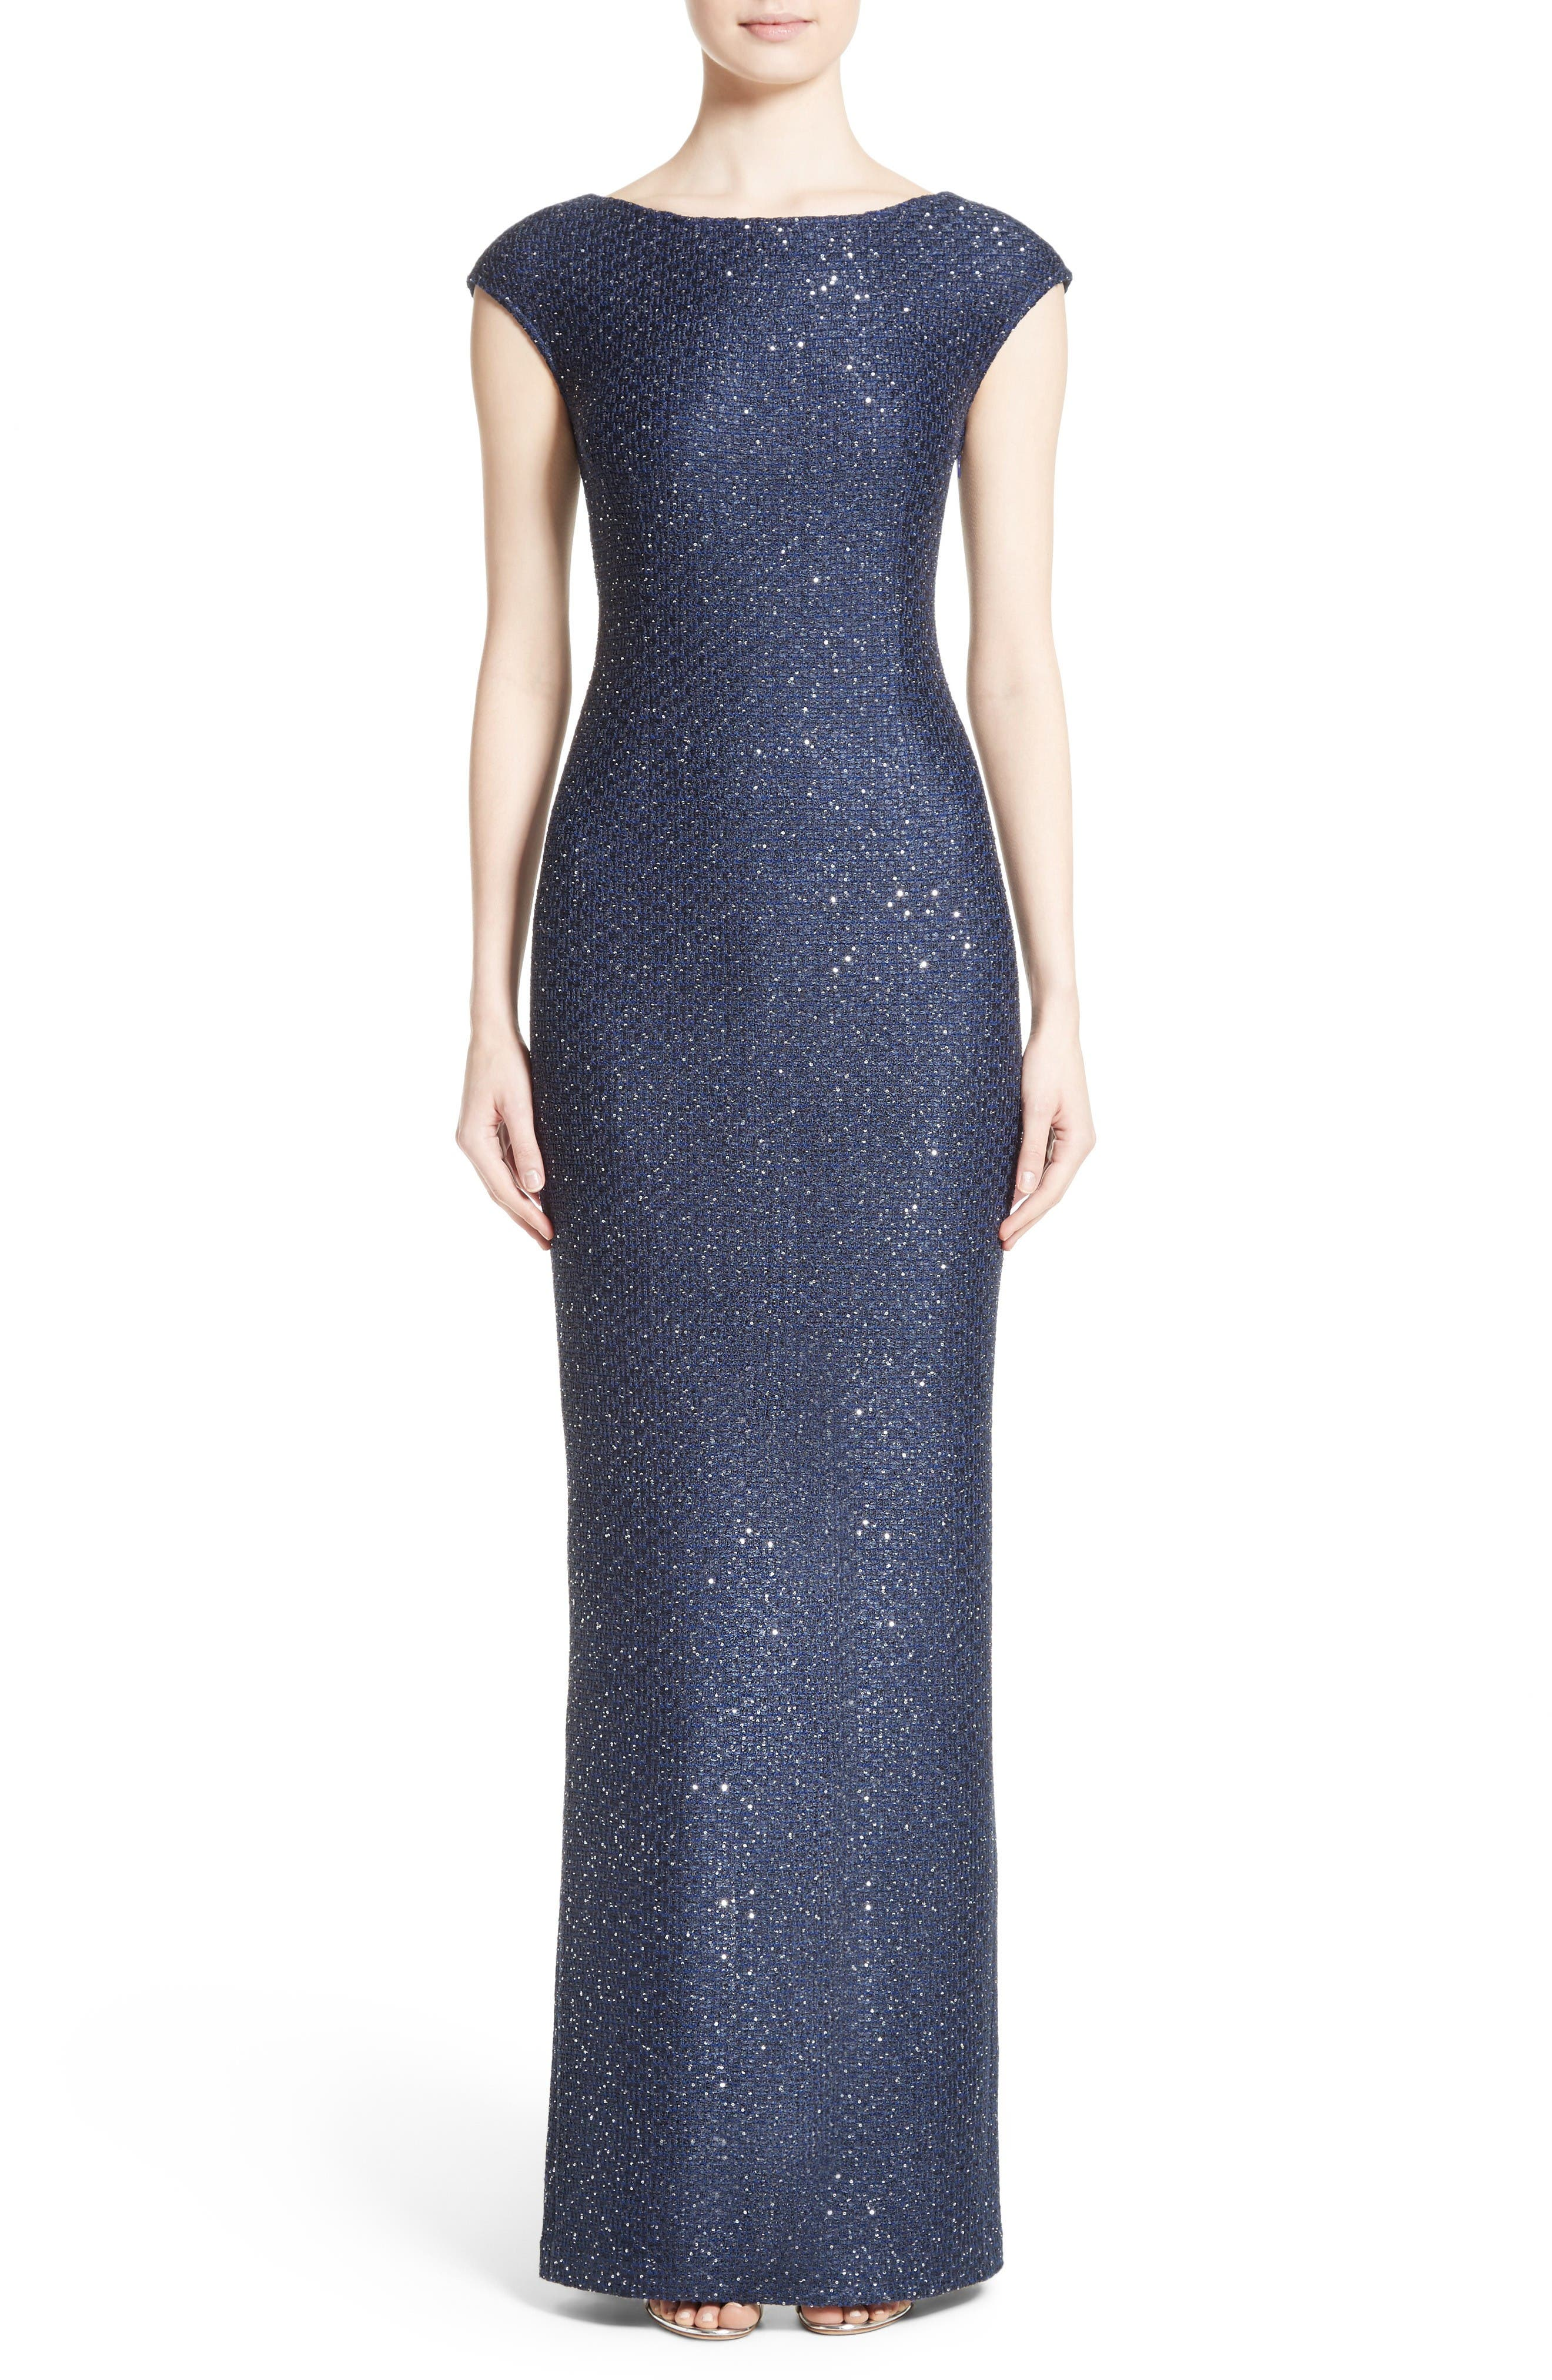 Alternate Image 1 Selected - St. John Evening Sequin Gown